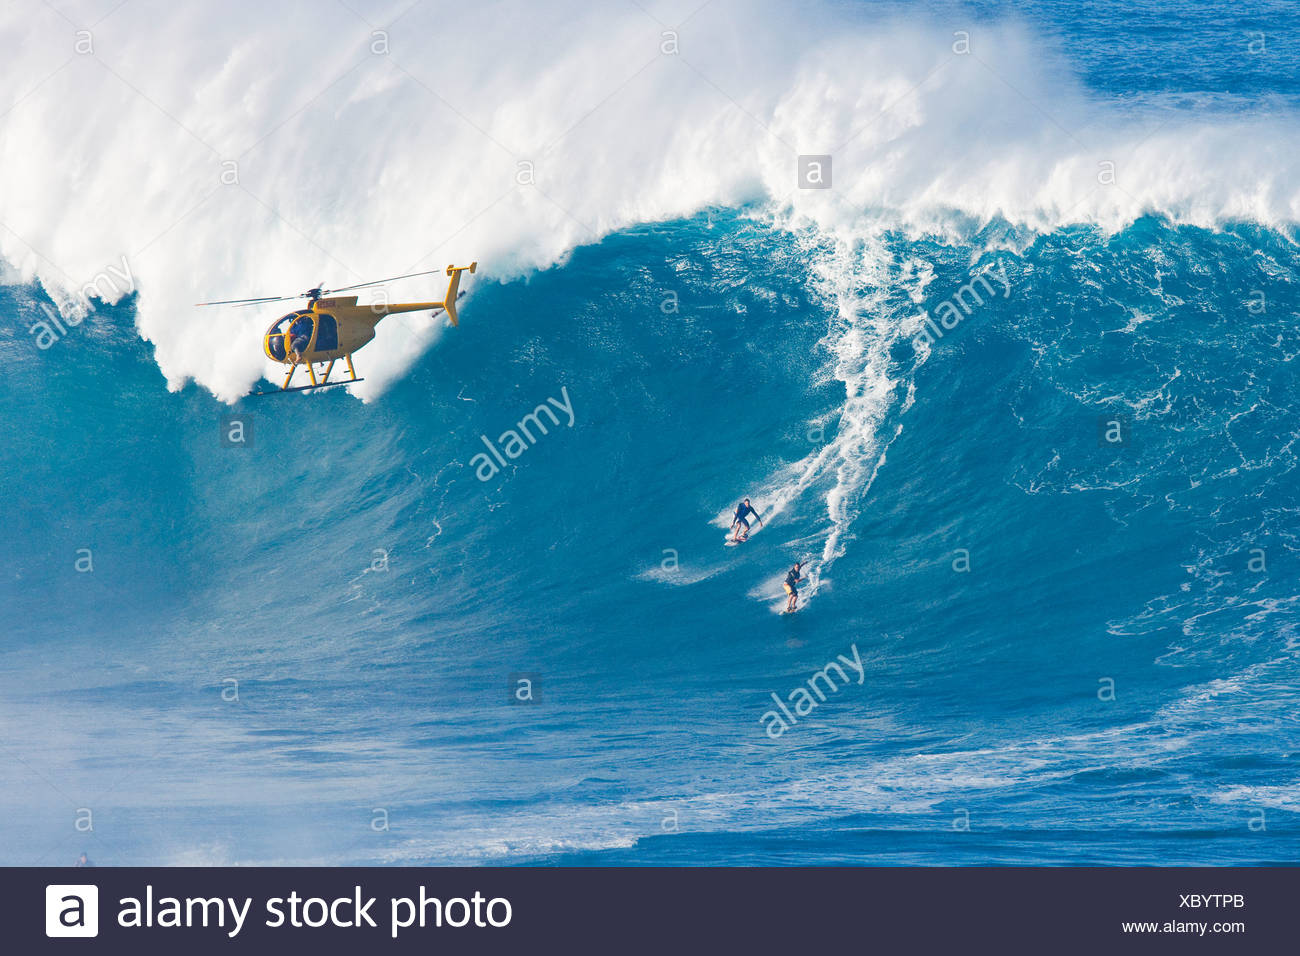 Big Wave Surfing With Helicopter Stock Photos Big Wave